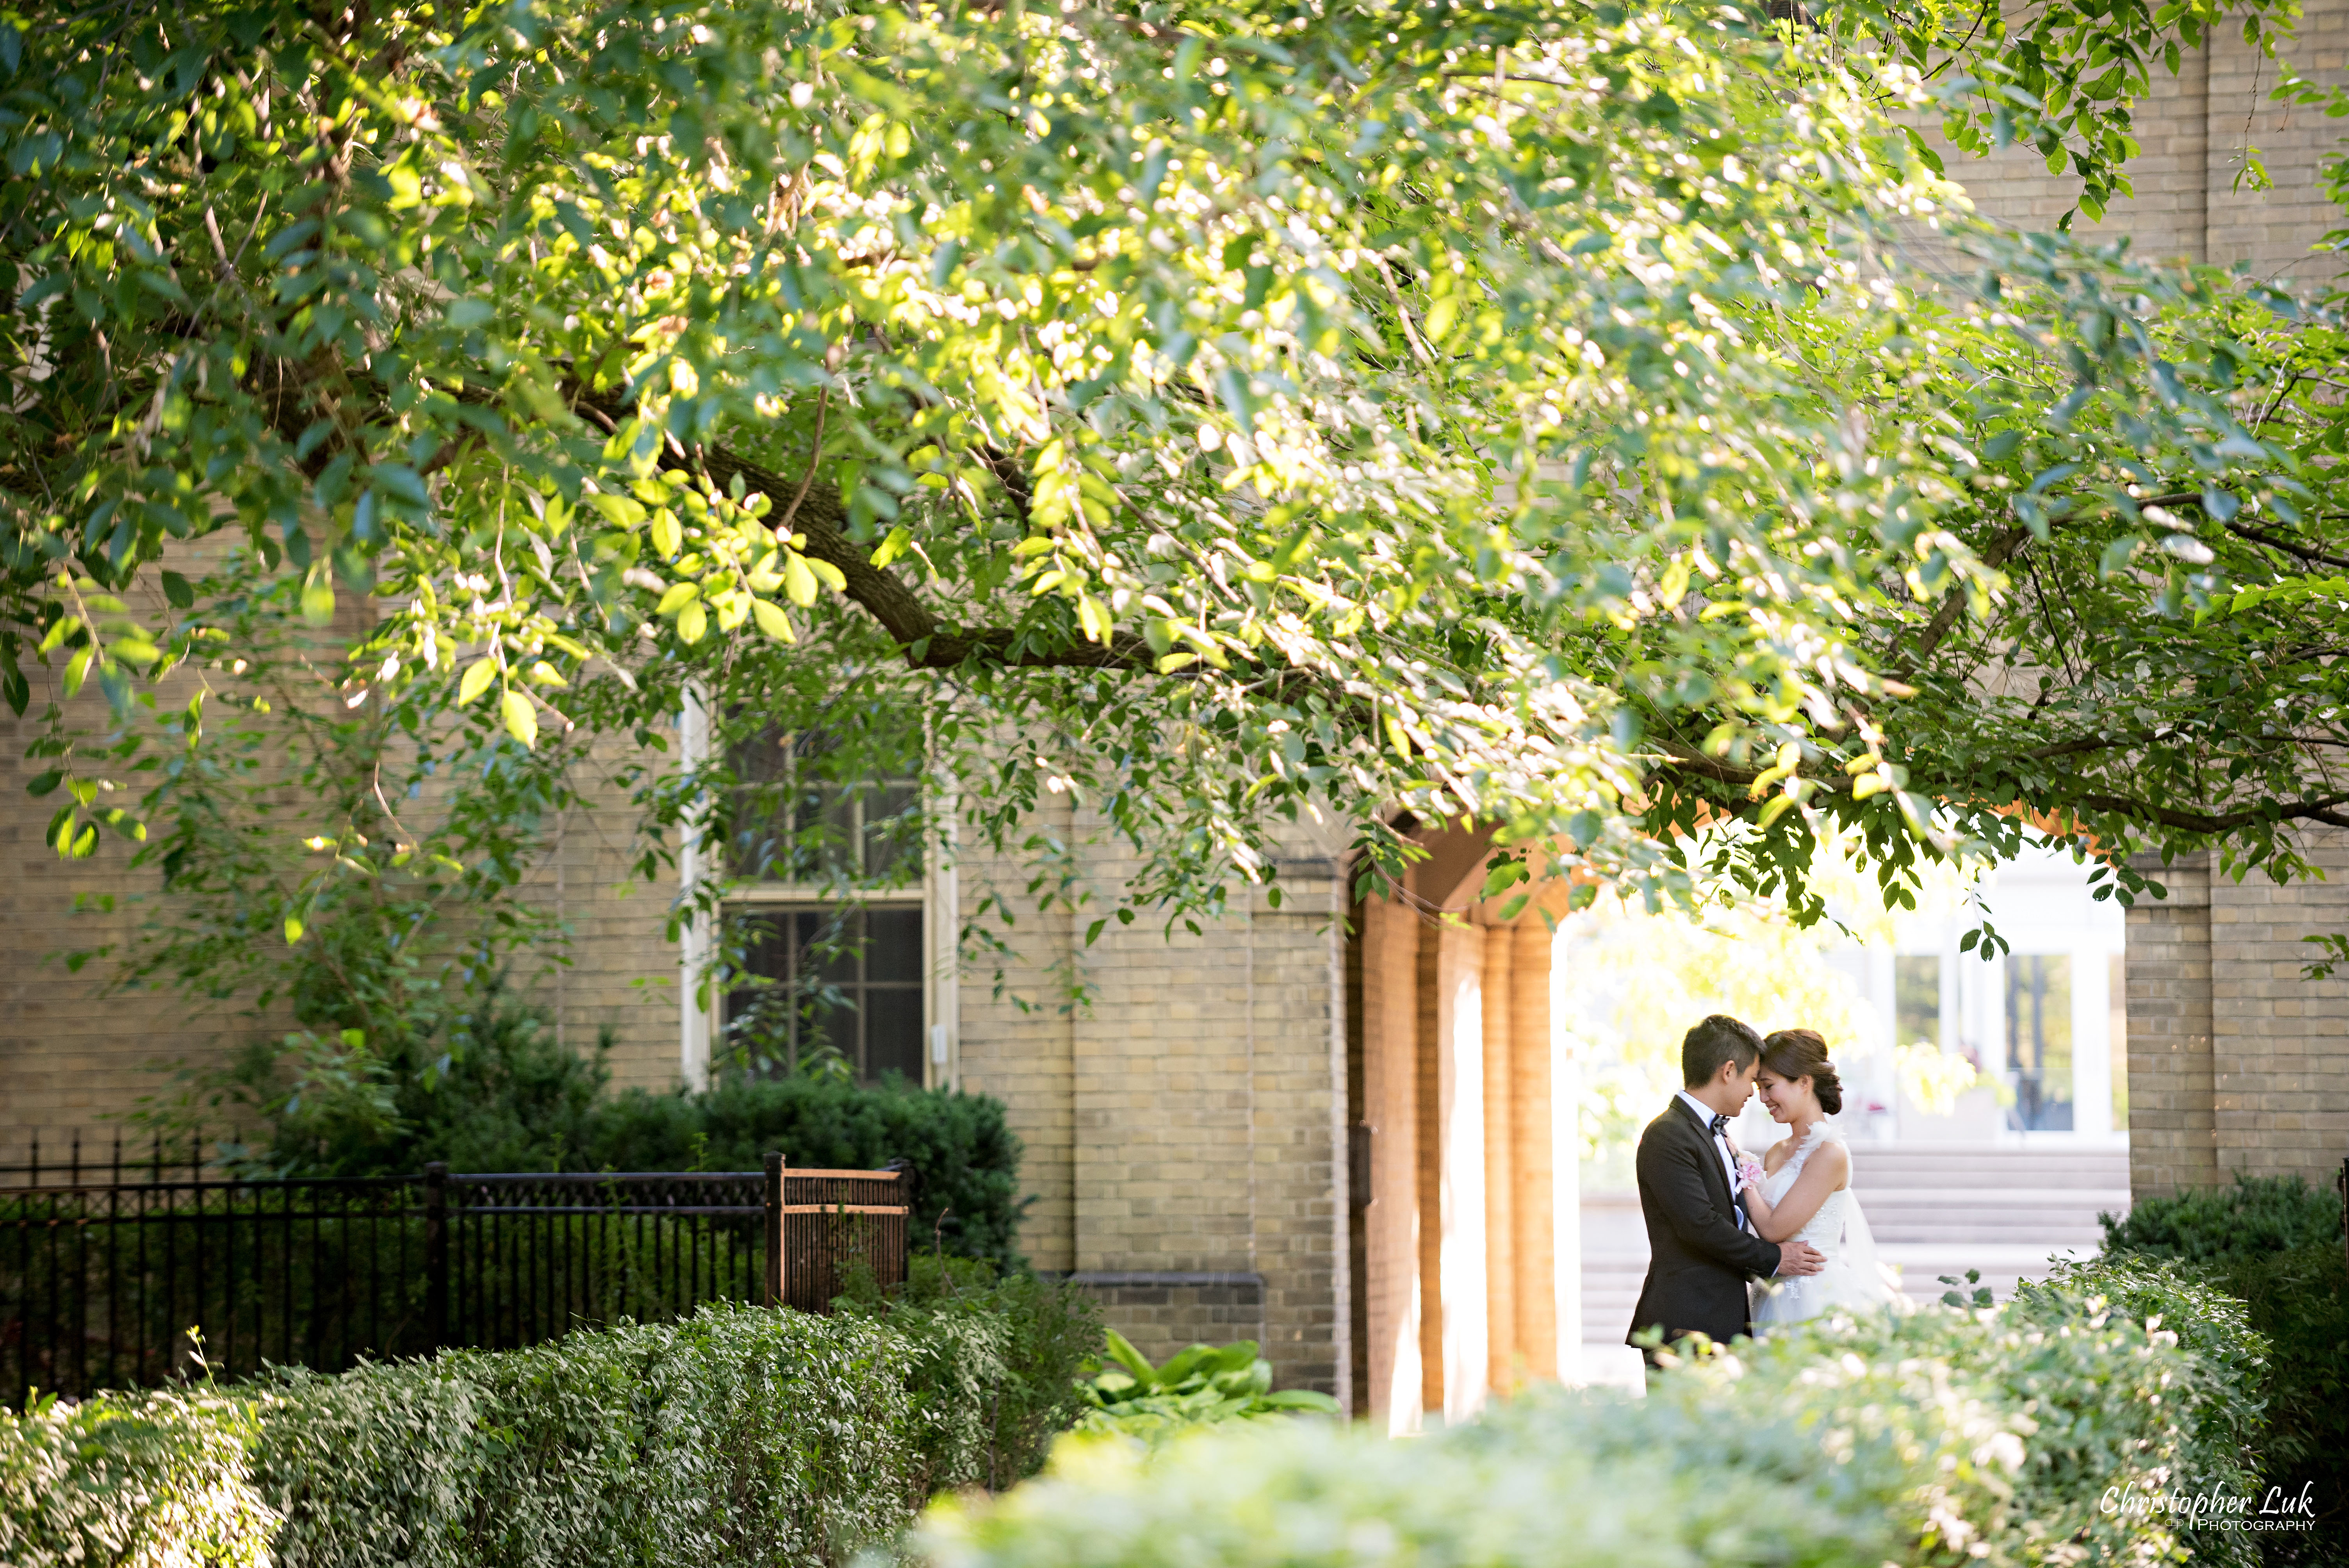 Alison and Kenneth's Pre-Wedding Session – University of Toronto – Toronto Wedding Photographer